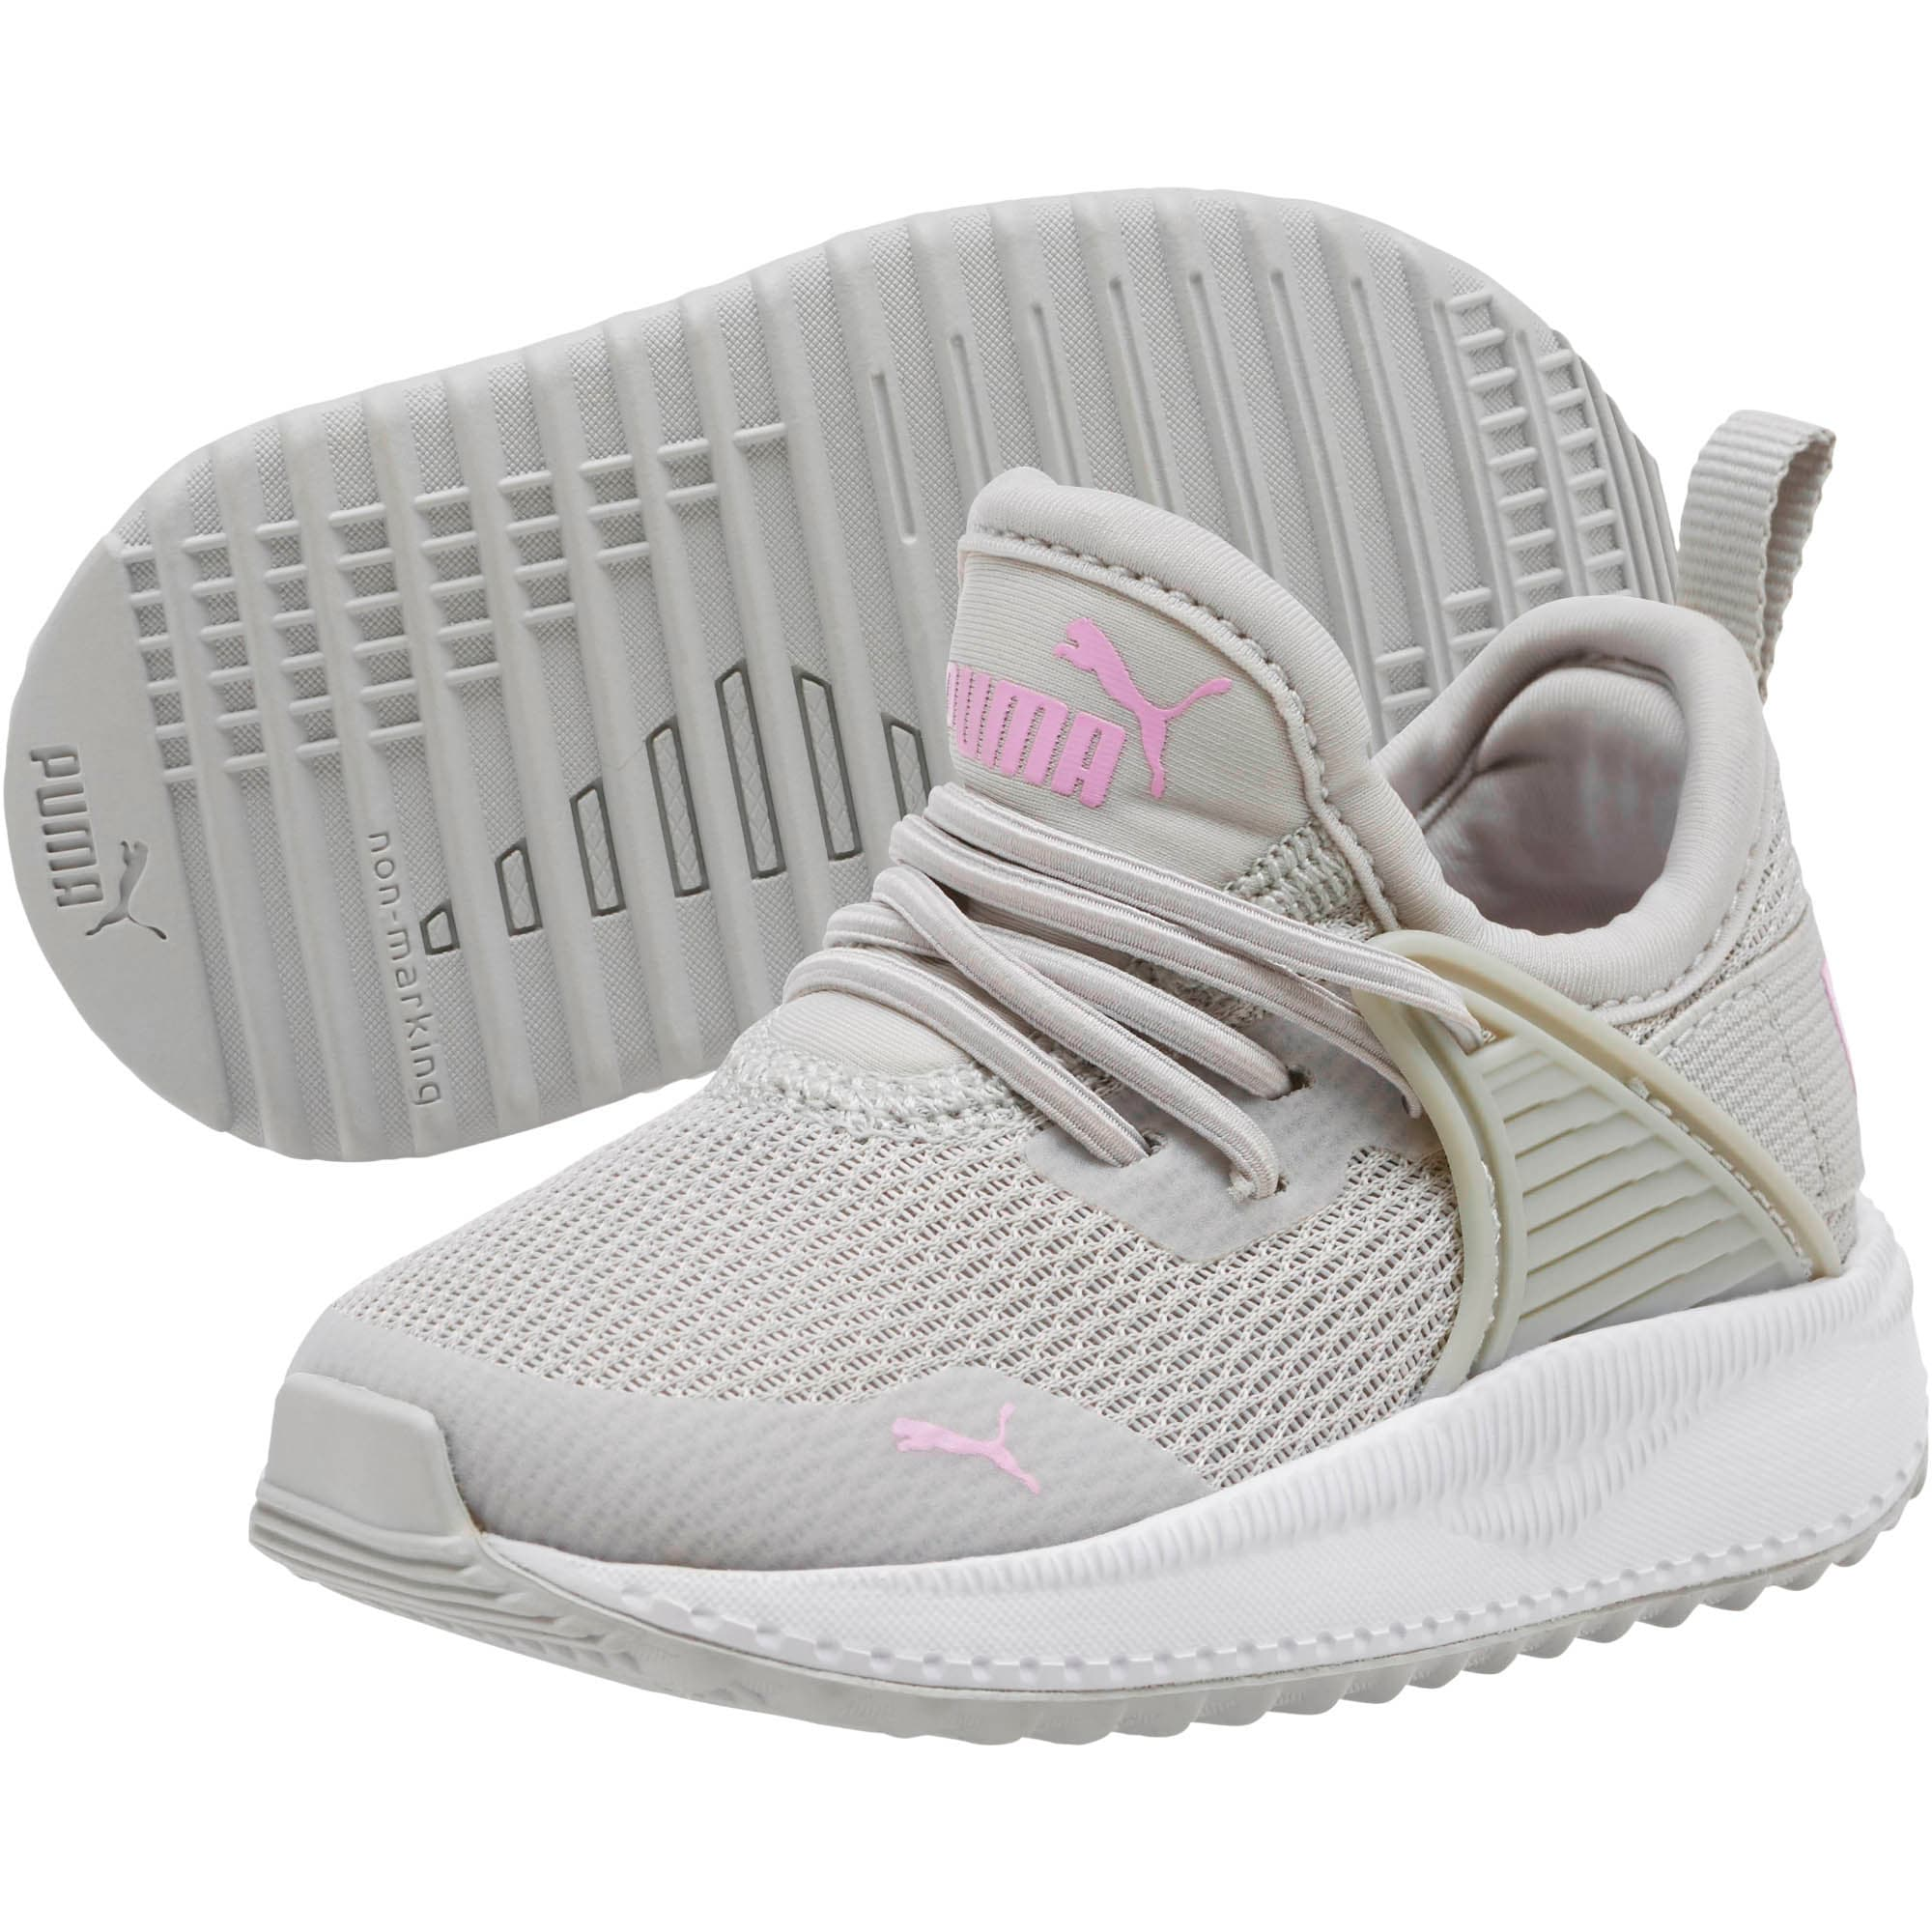 Thumbnail 2 of Pacer Next Cage AC Inf Shoes, Gray Violet-Orchid, medium